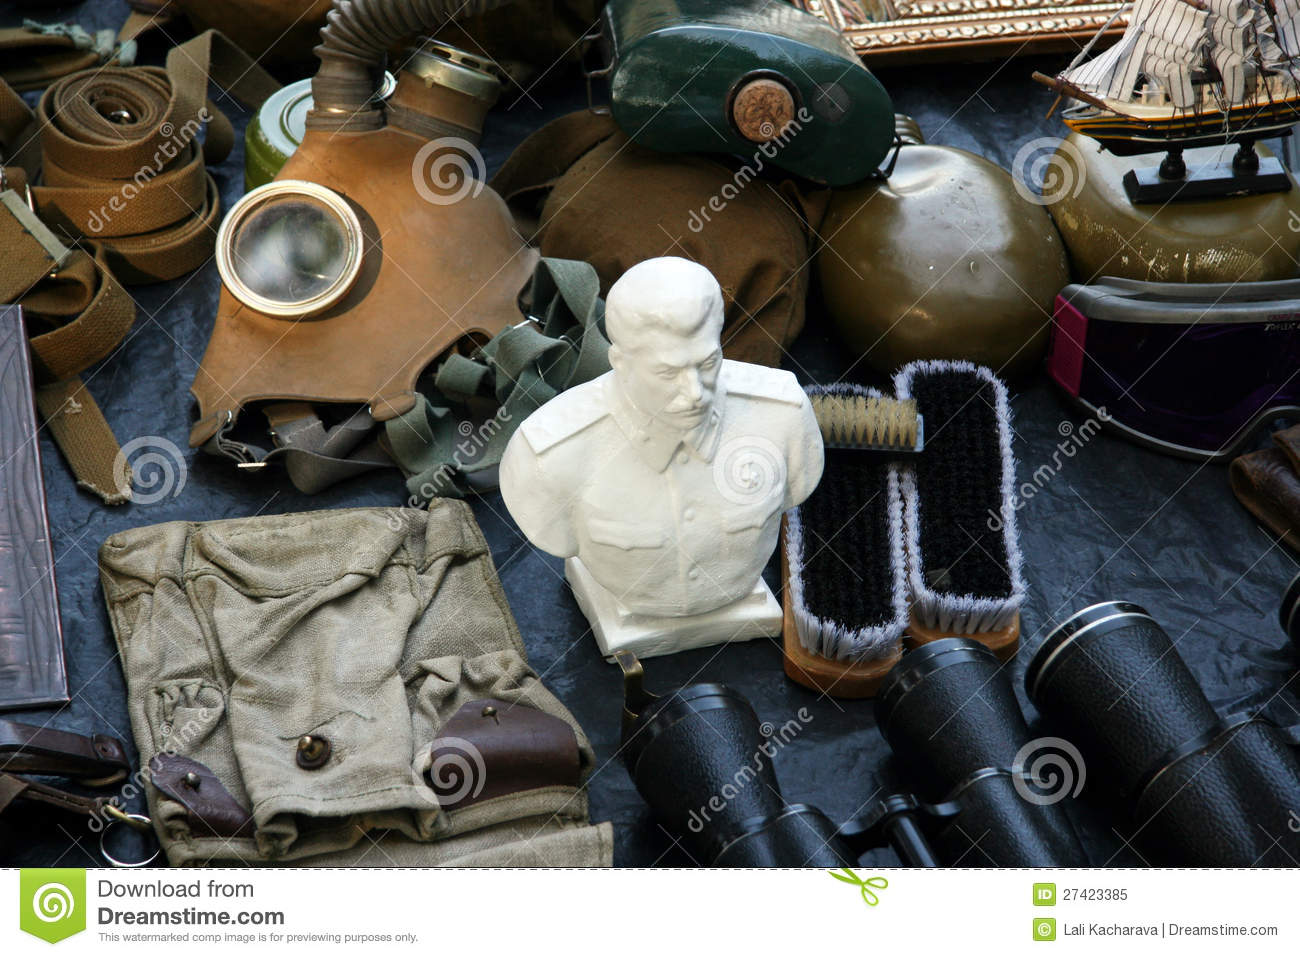 Georgia Tbilisi Flea Market Stock Photos Georgia Tbilisi: Flea Market In Tbilisi (Georgia) Stock Image